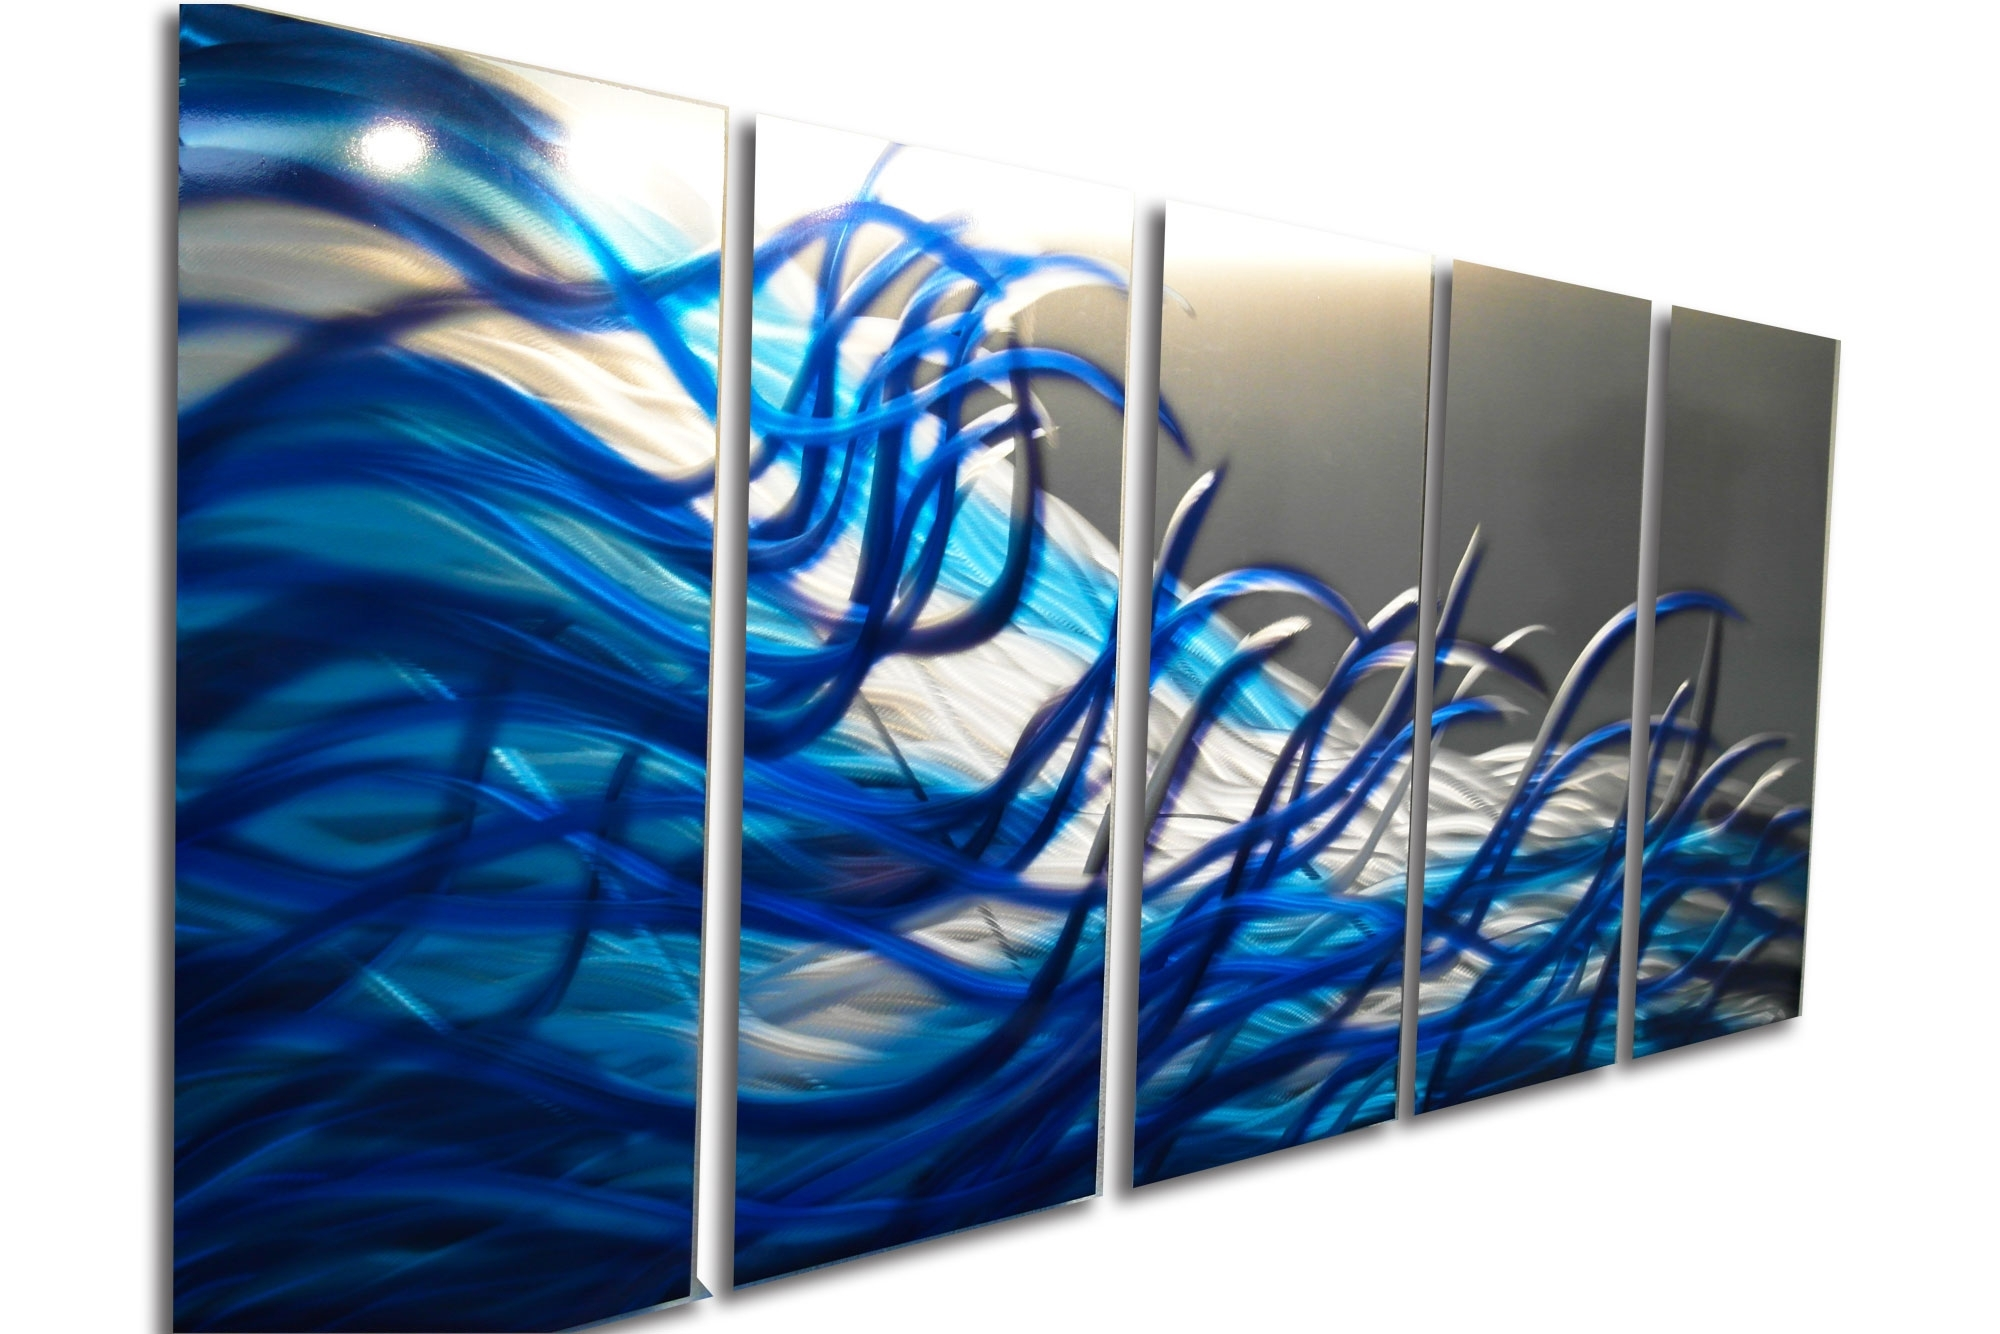 Most Recent Resonance Blue 36x79 Metal Wall Art Contemporary Modern Decor Within Contemporary Metal Wall Art (View 12 of 15)